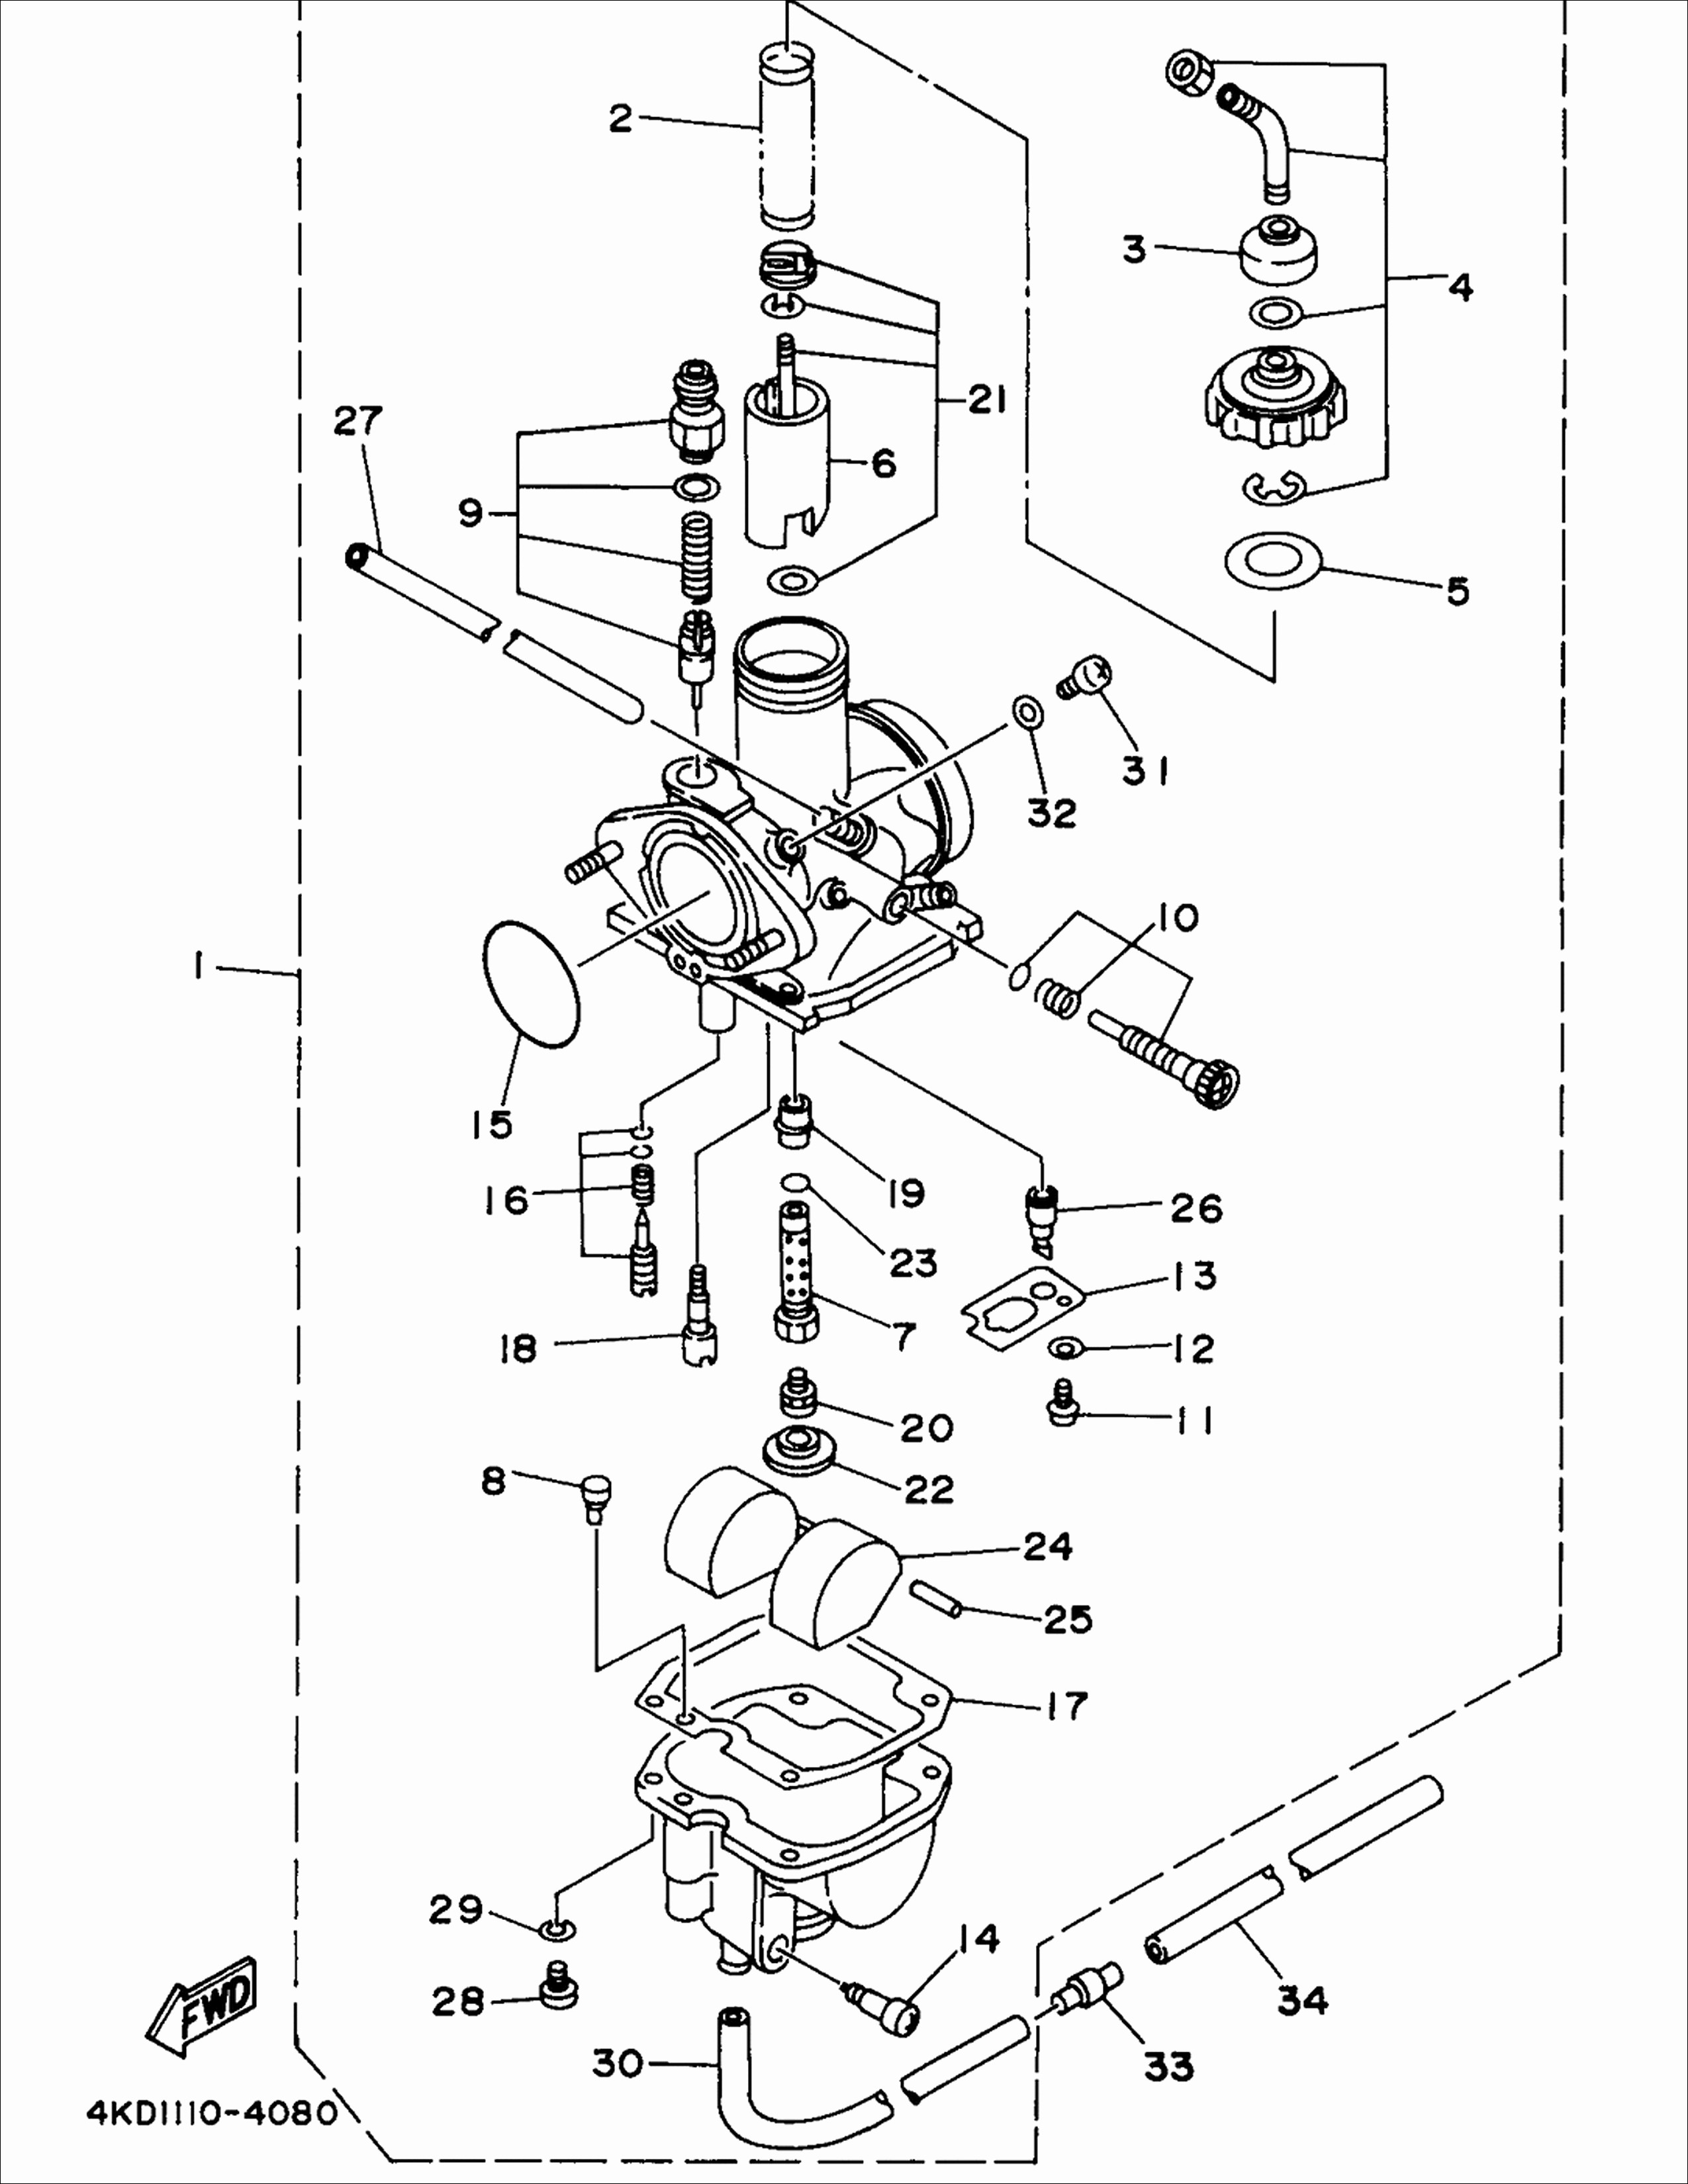 2002 Grand Am Engine Wiring Diagram